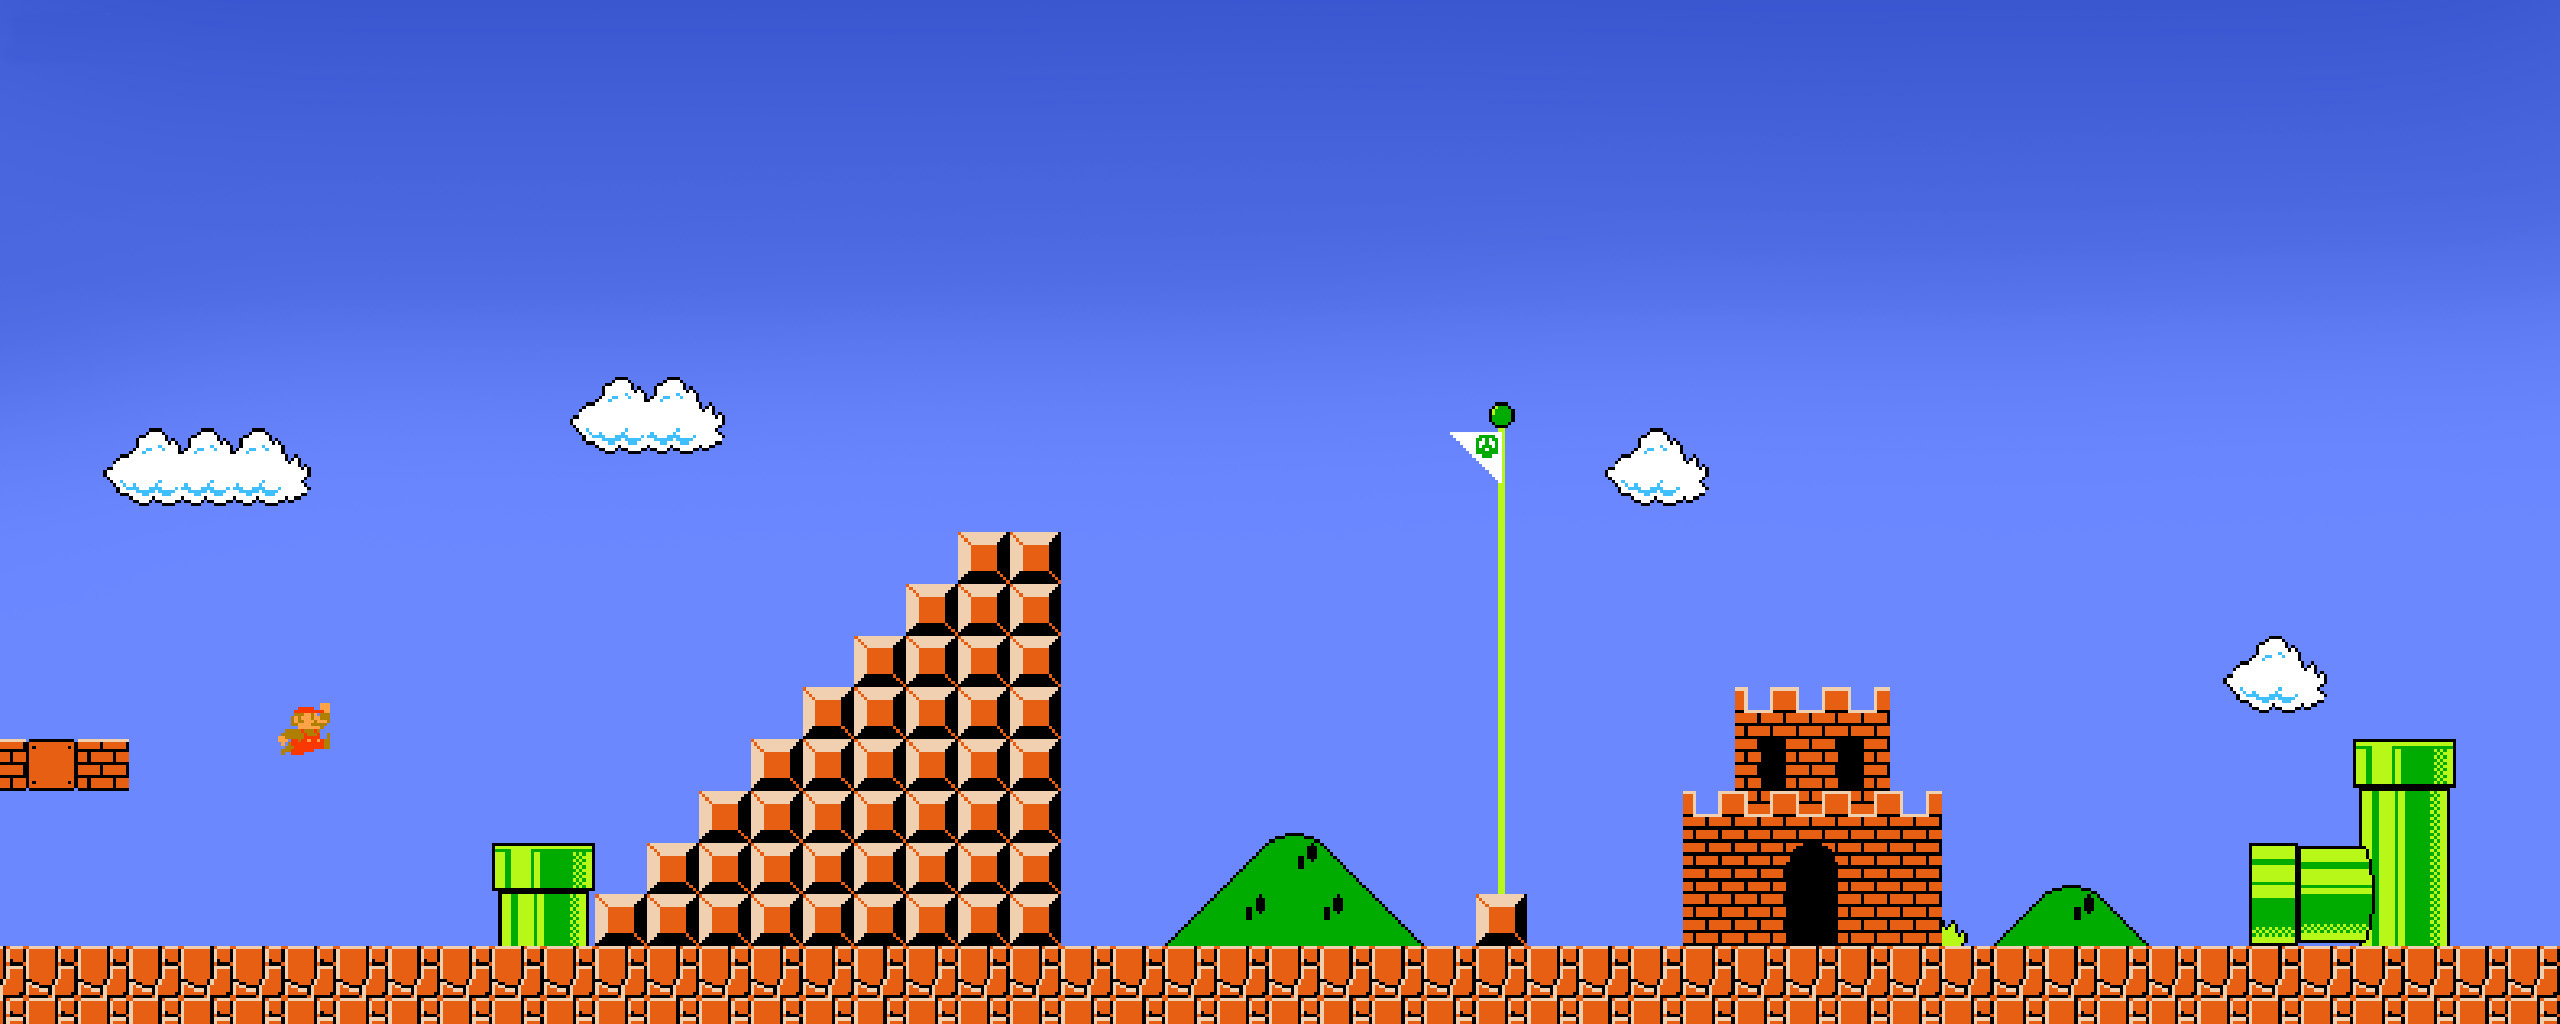 Mario bros background   SF Wallpaper 2560x1024